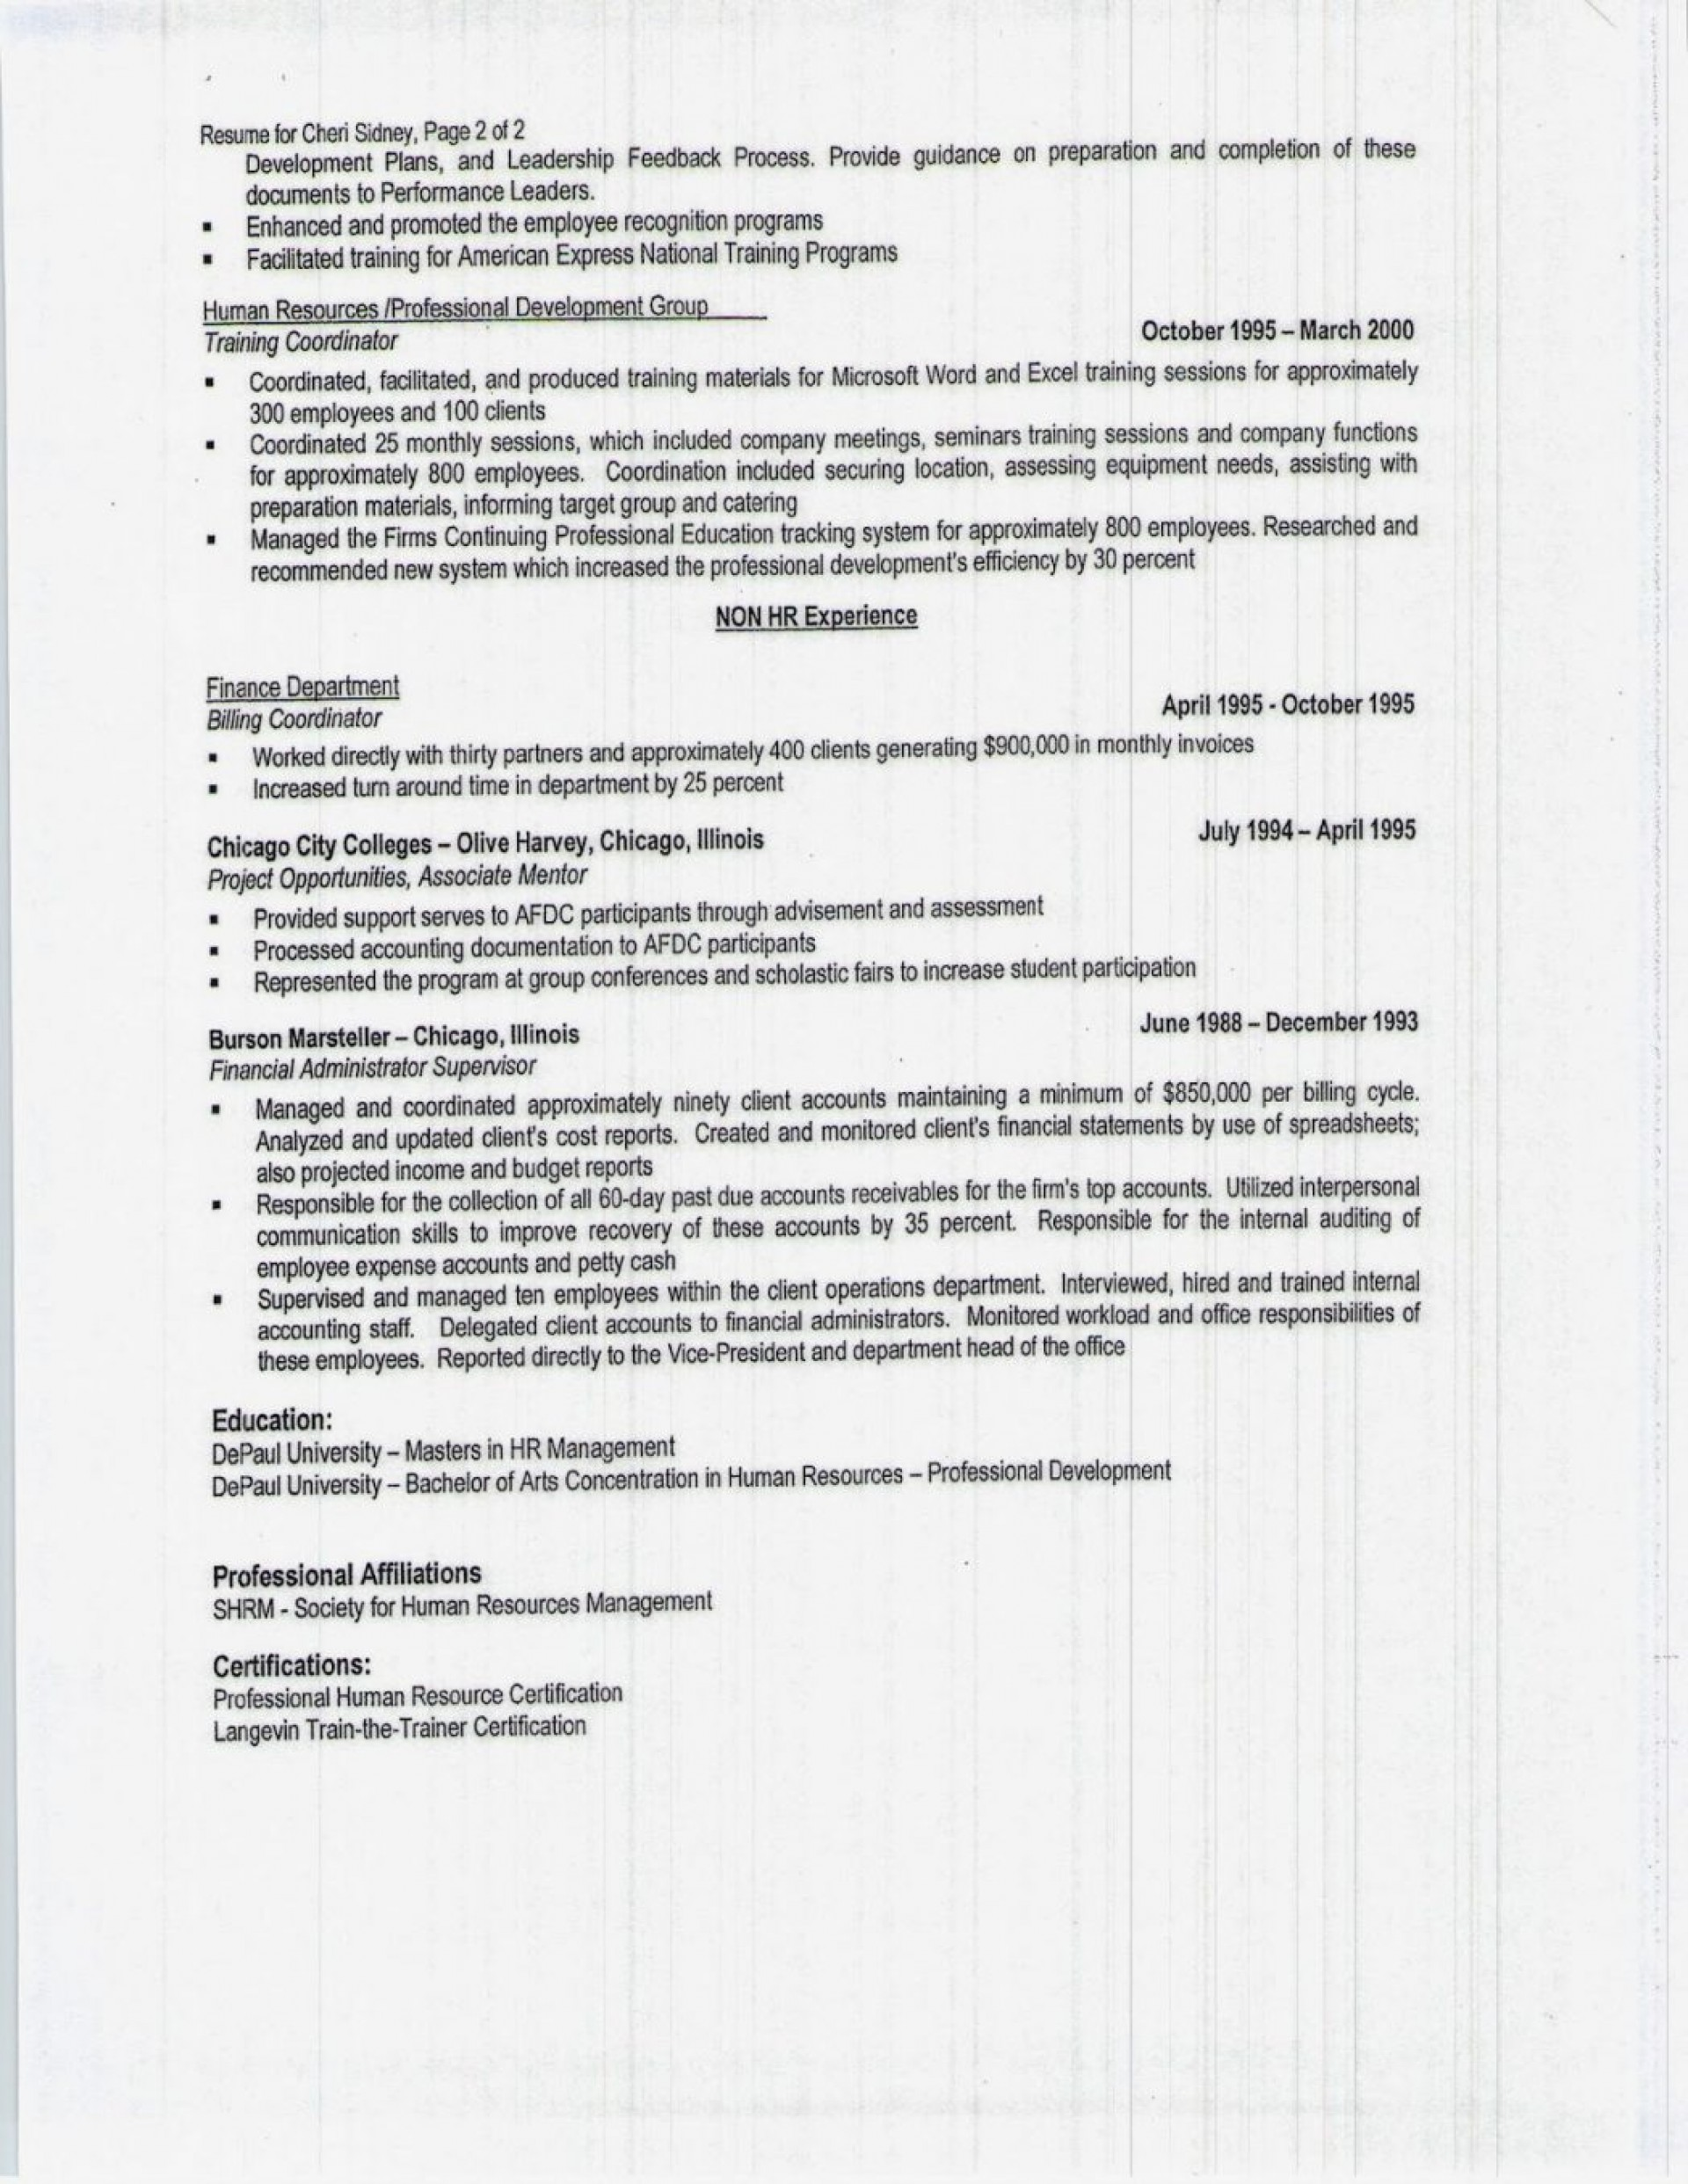 016 Essay Example No Scholarships Scholarship And Travel College School Sidne Colleges With Requirement Texas 1048x1356 Without Stunning Essays In Required For Students Examples 1920